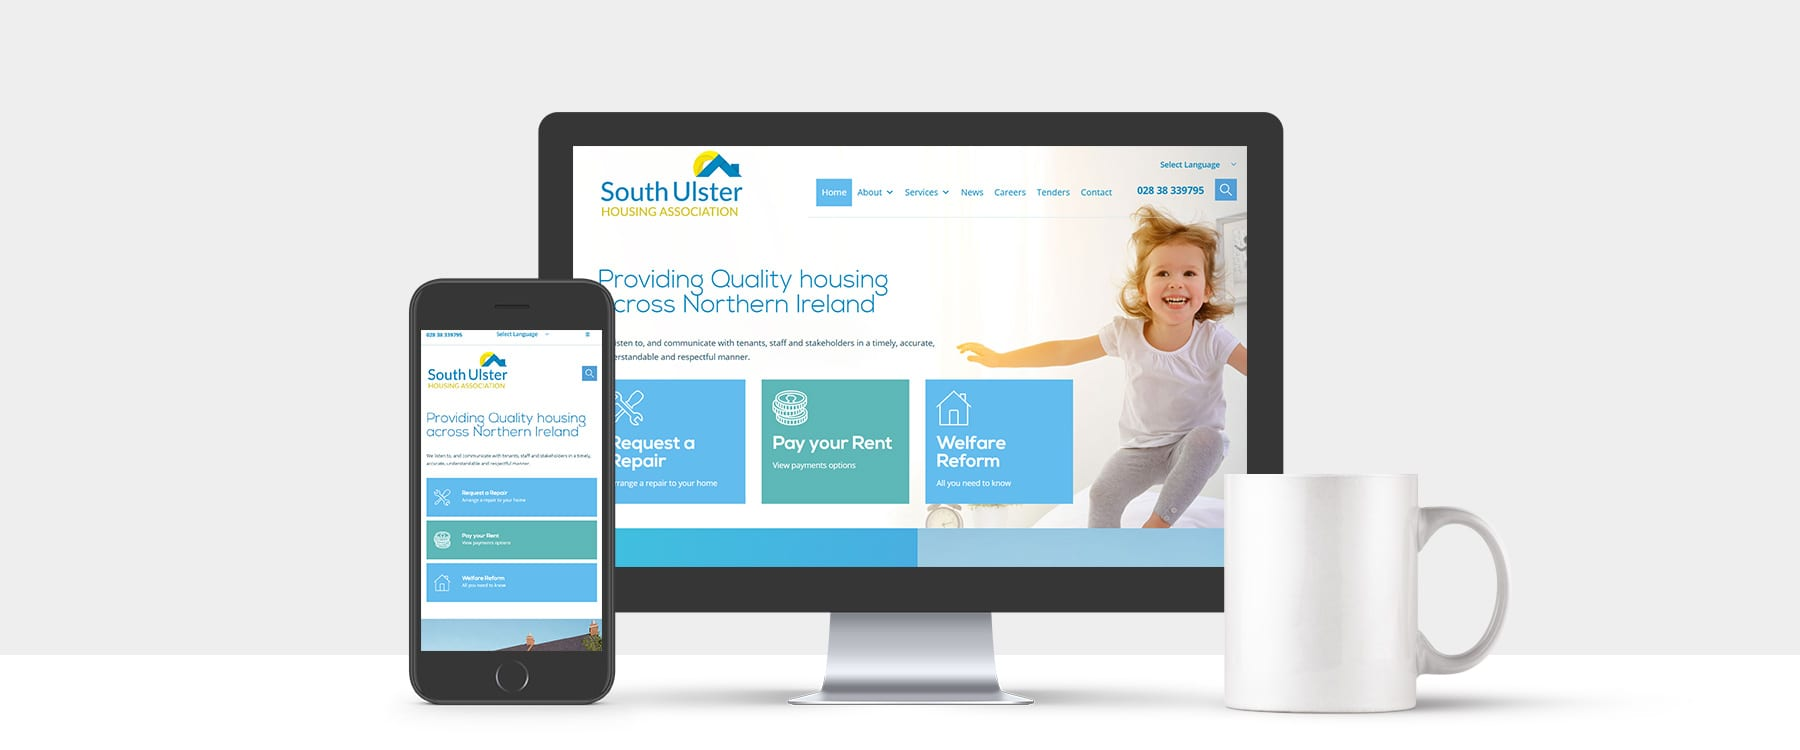 South Ulster Housing Association Launch New Cutting Edge Website Image